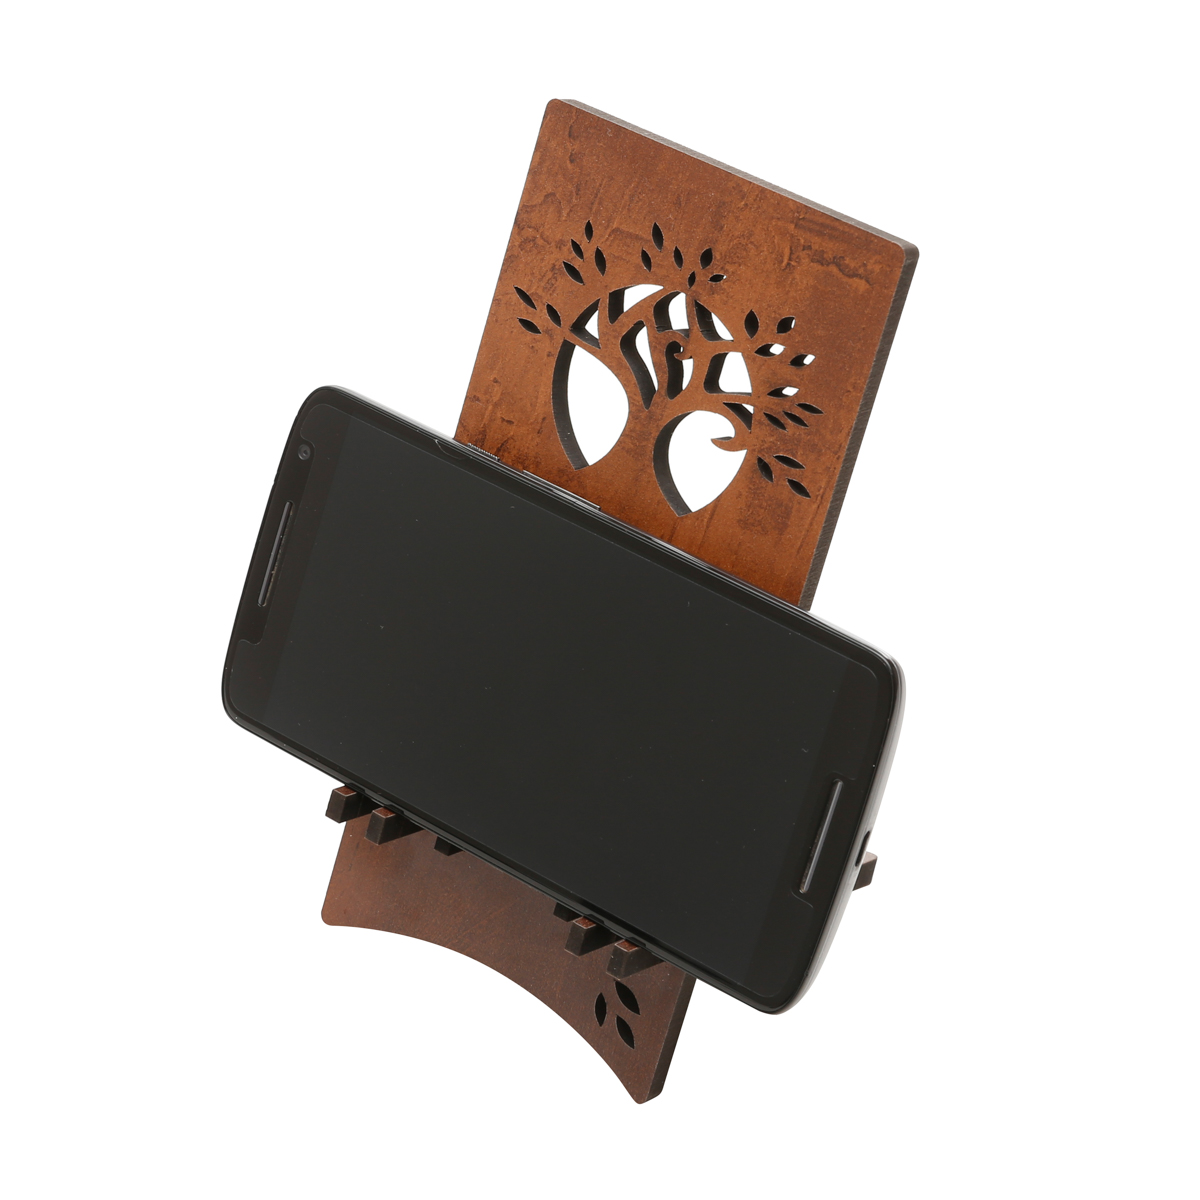 Woodart Cell Phone Support/Holder for Desk and Tabletop